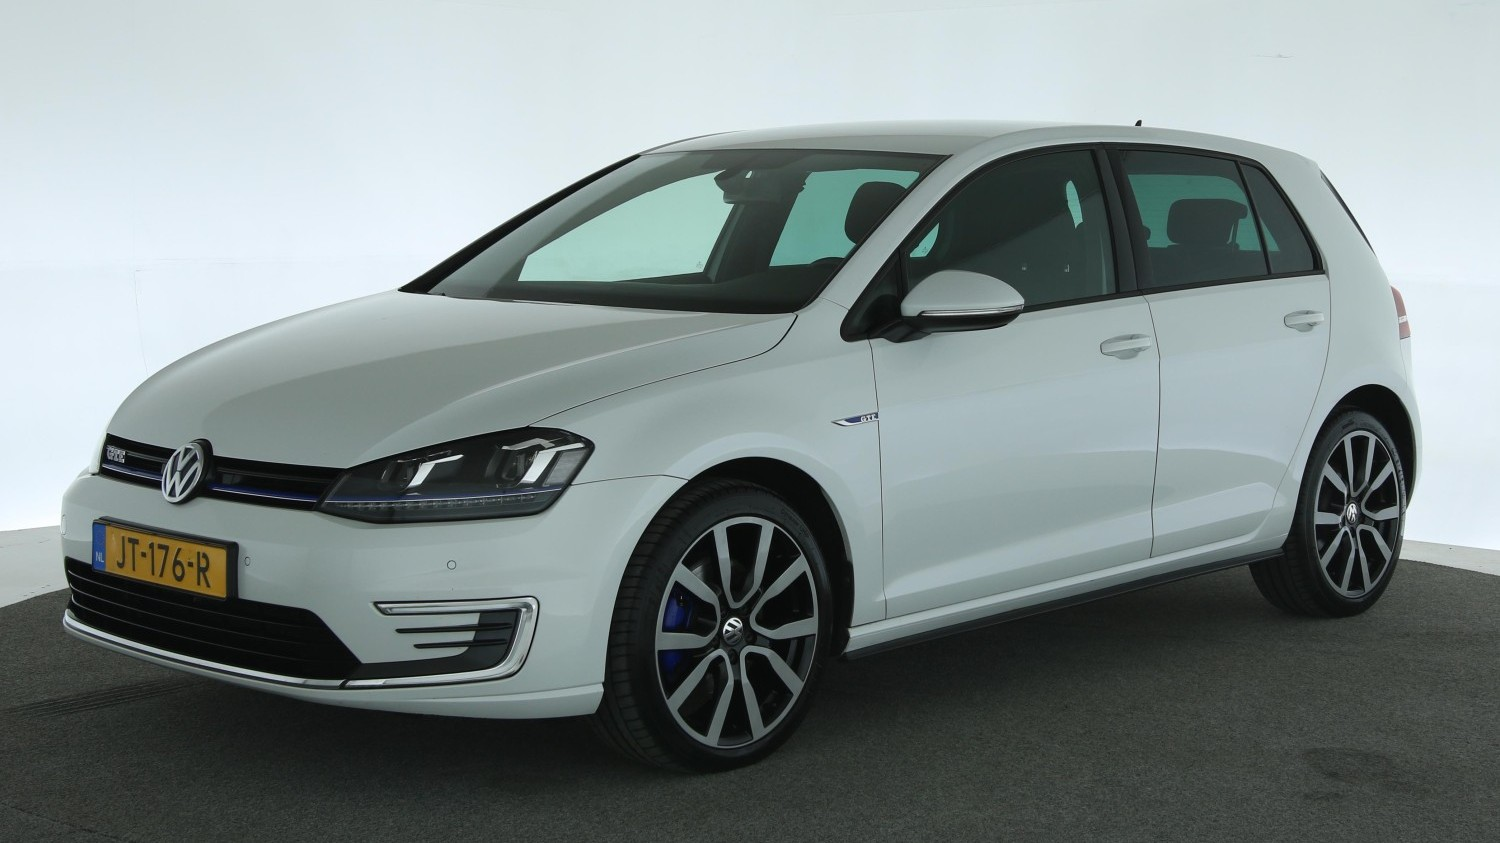 Volkswagen Golf Hatchback 2015 JT-176-R 1